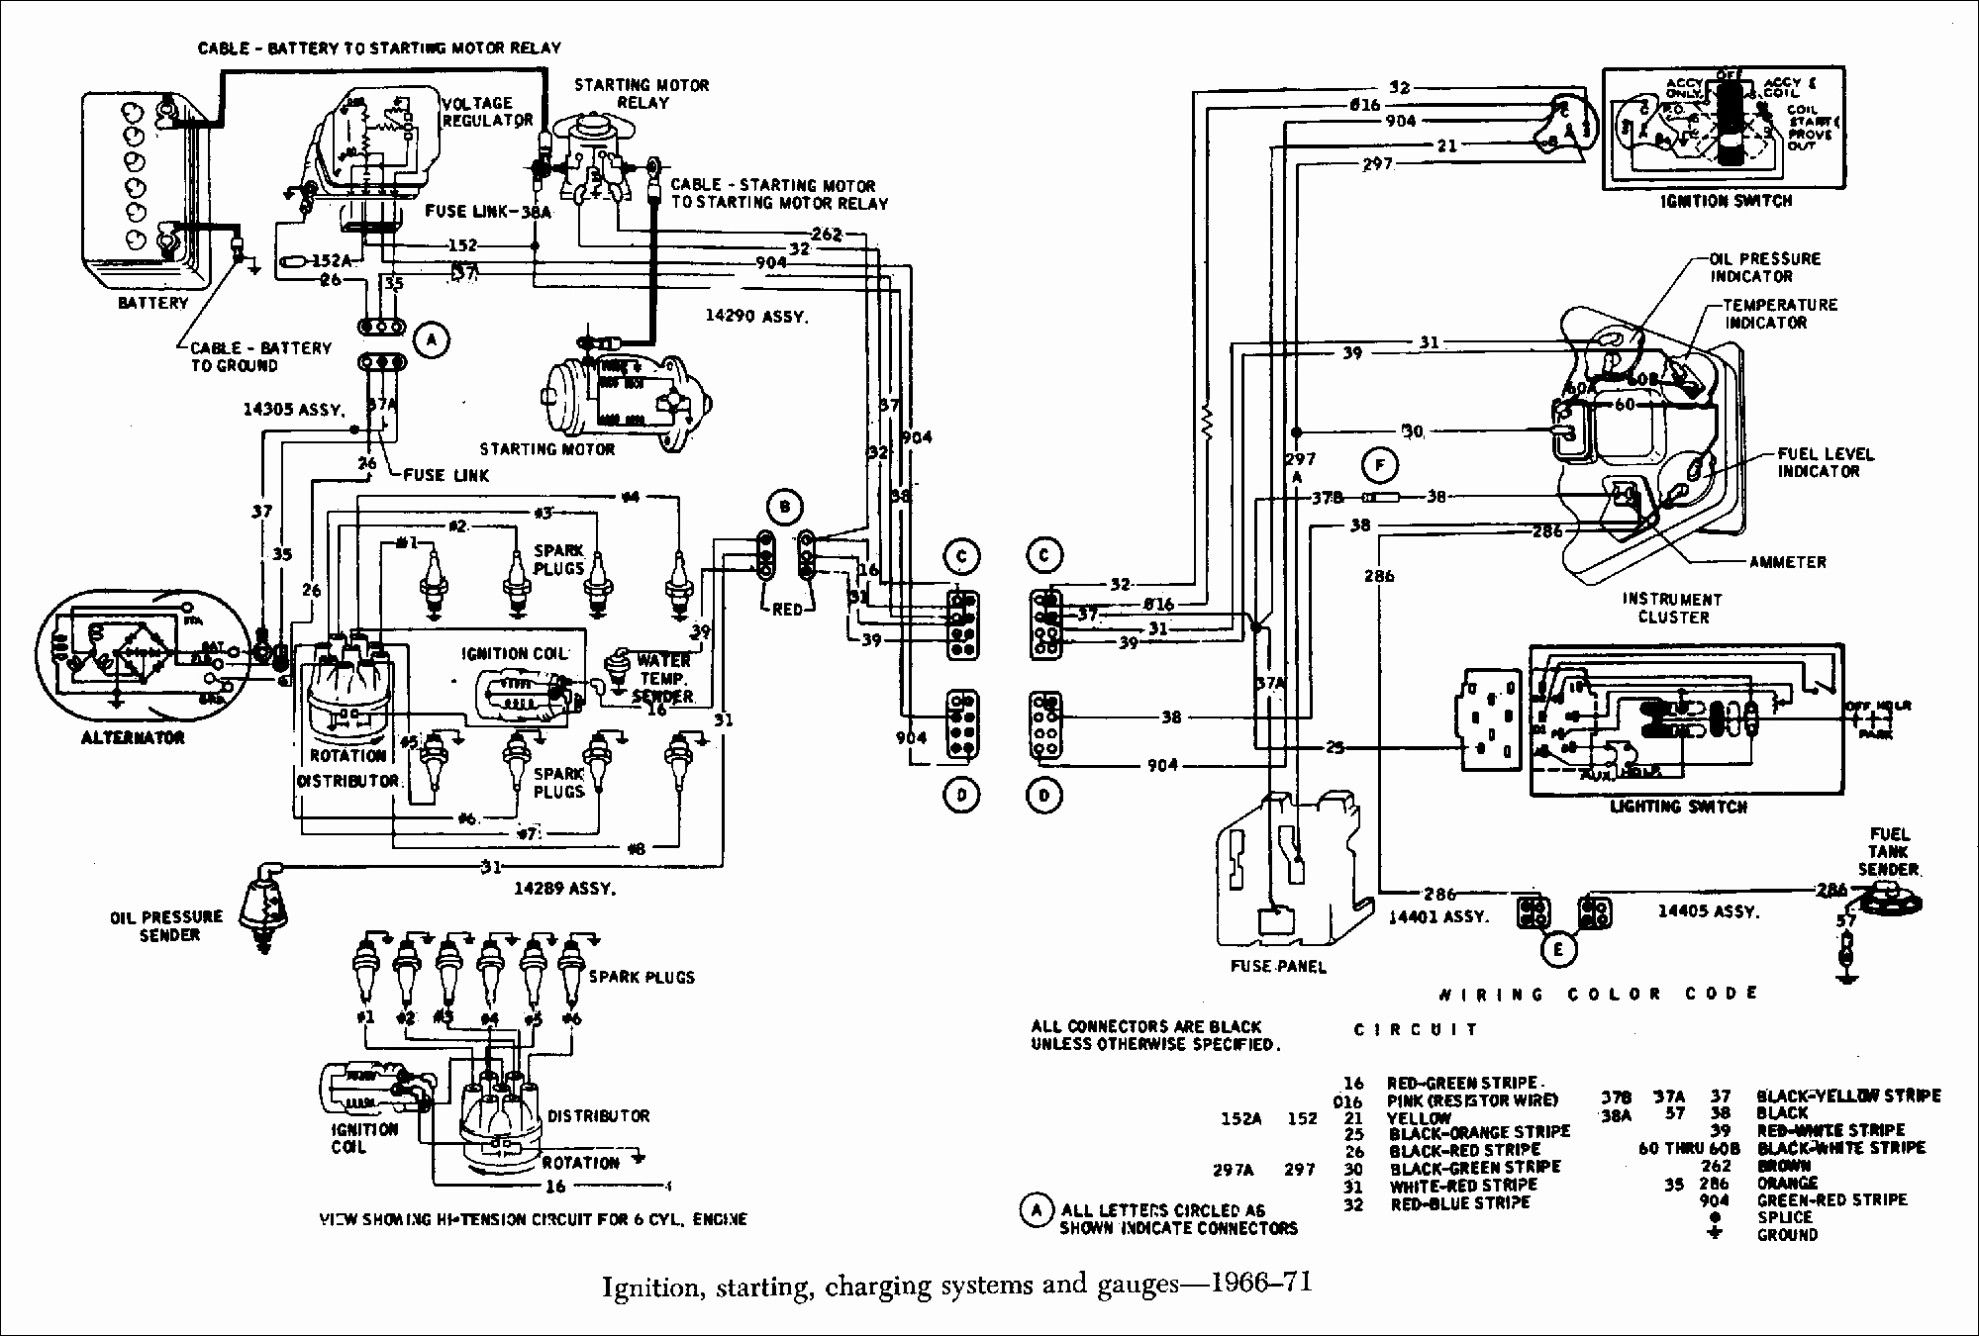 Unique Wiring Diagram Of A Car